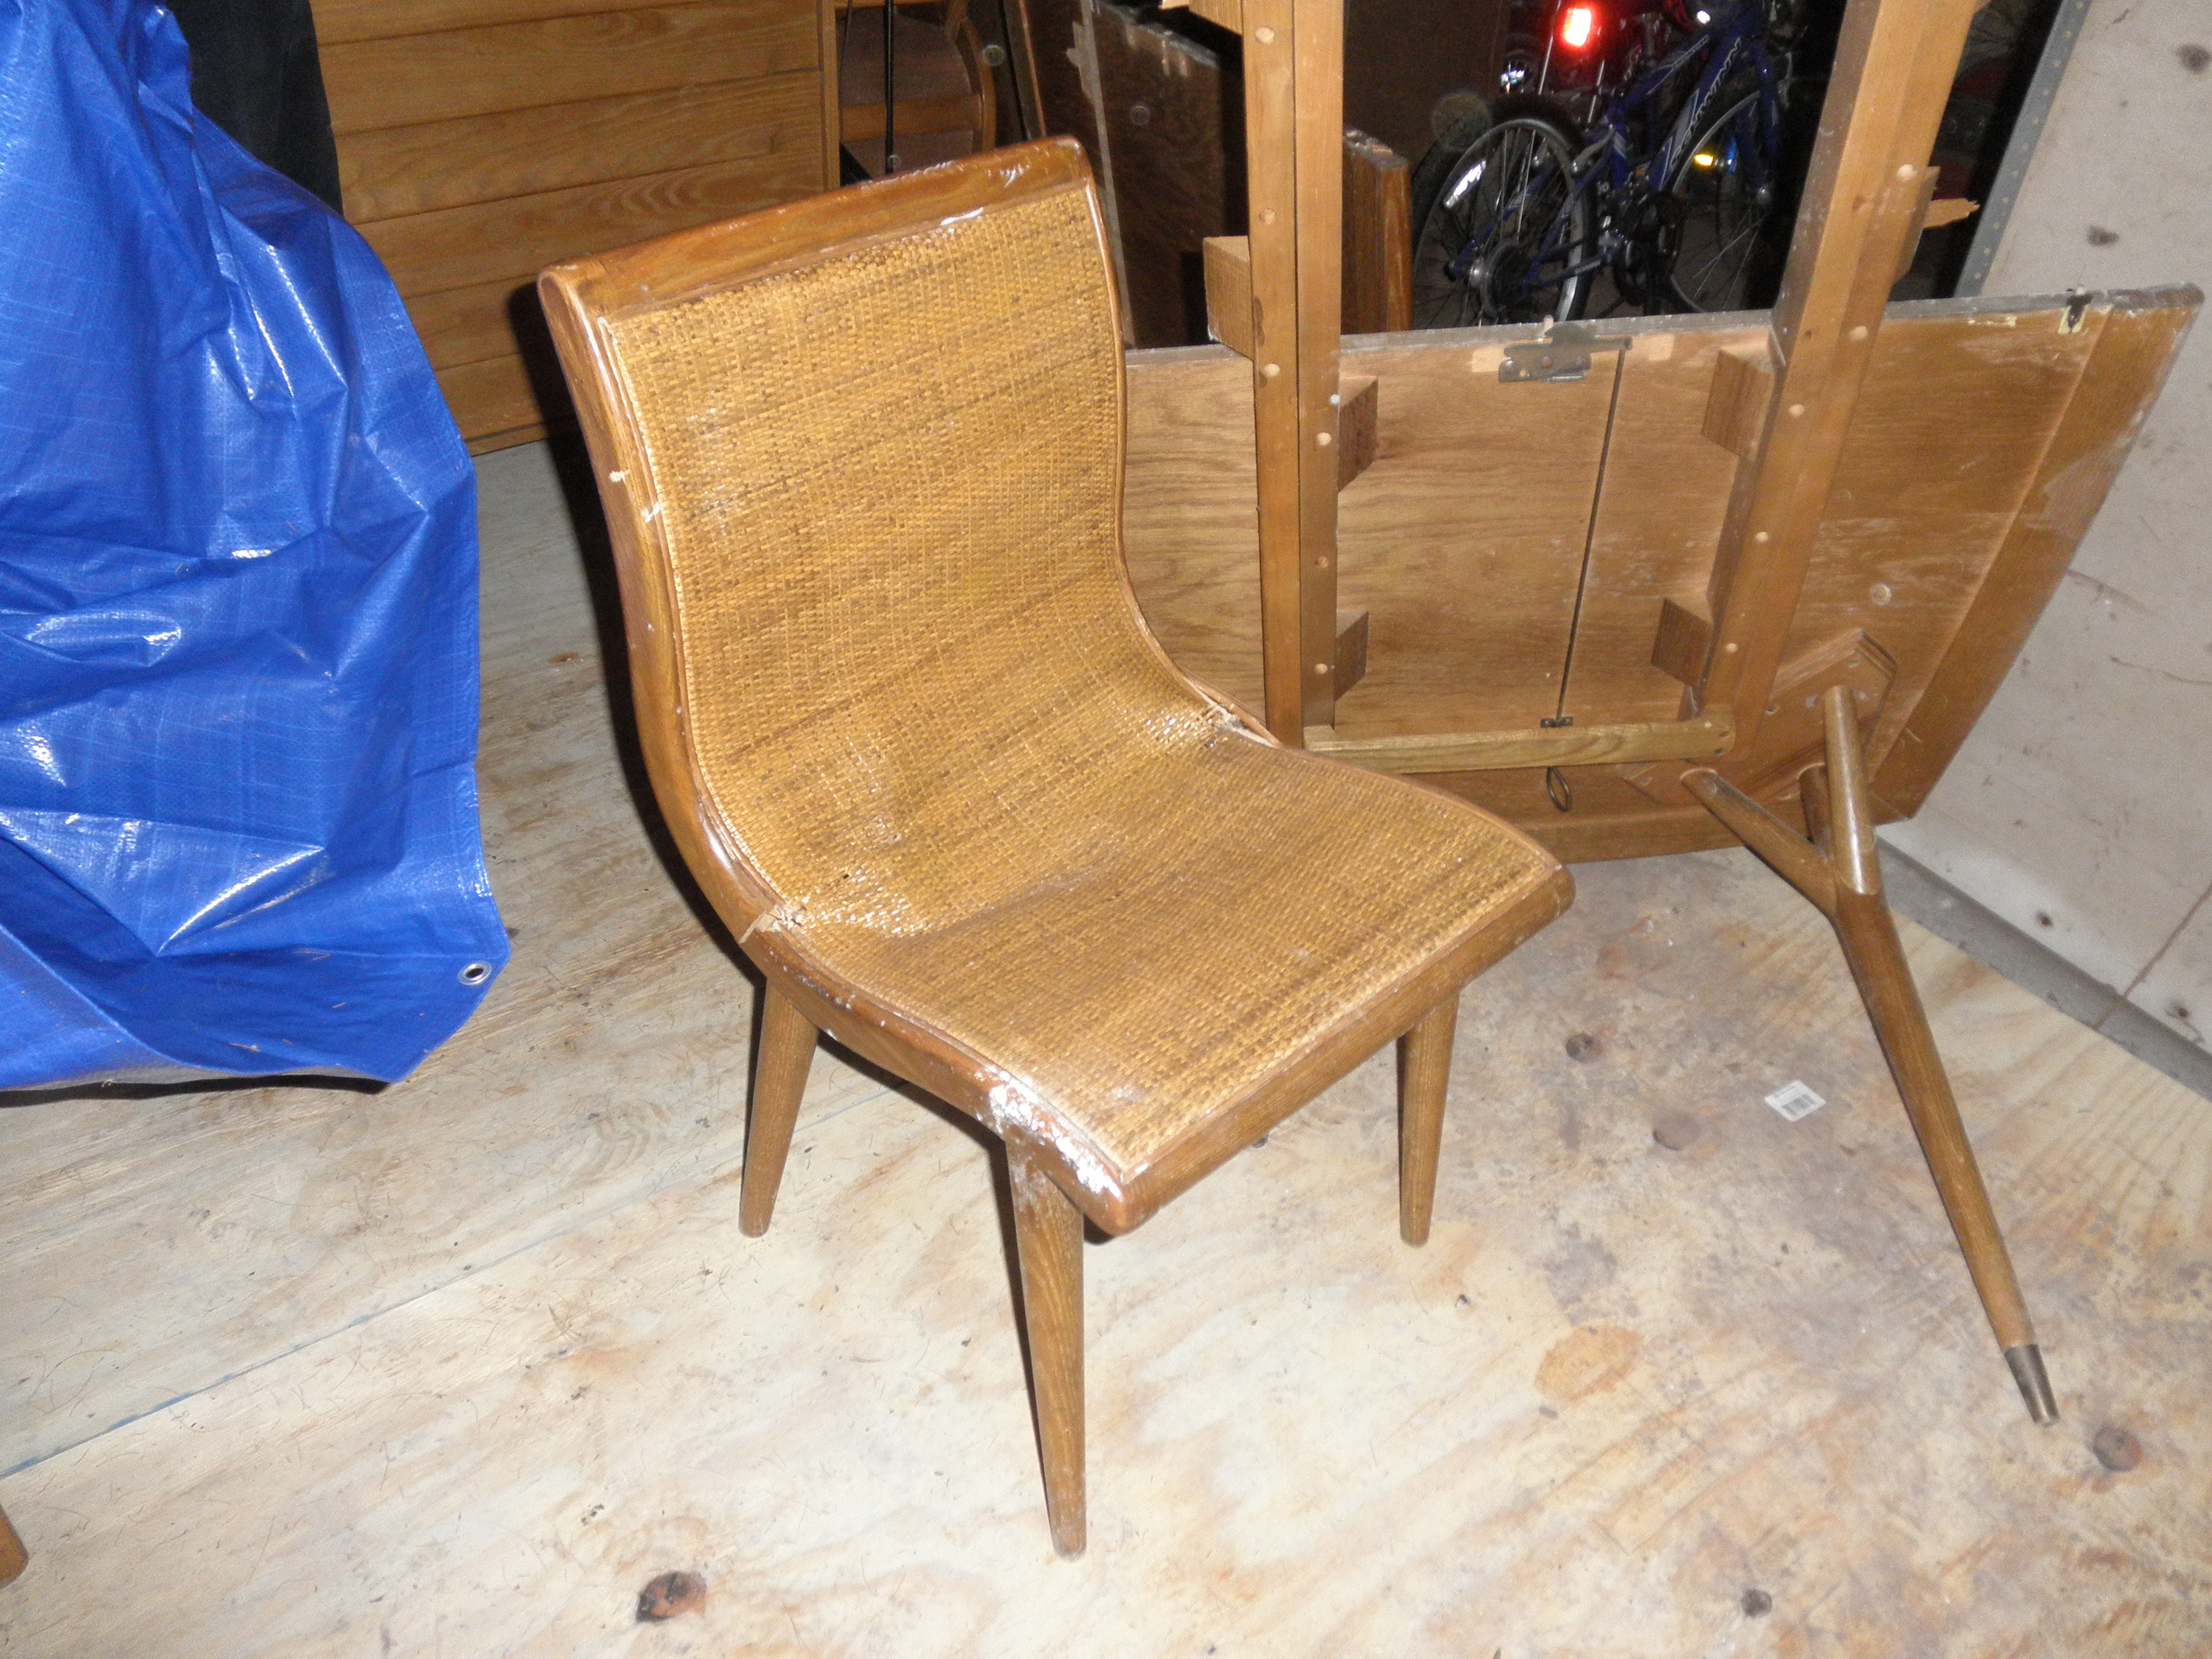 Clearfield Chairs BEFORE